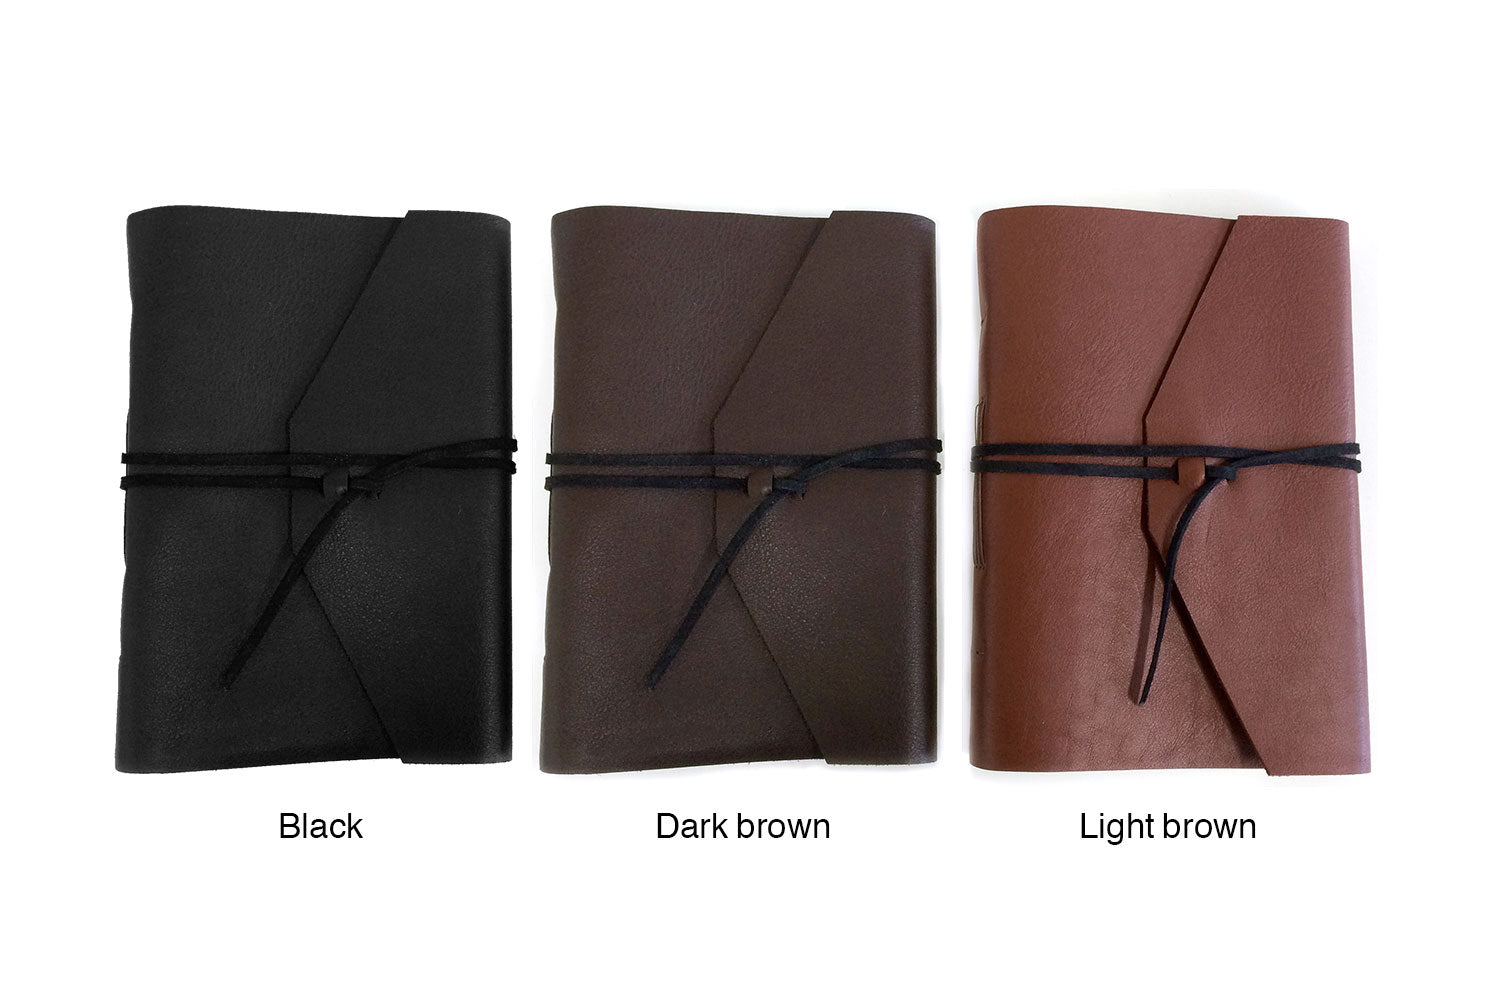 Men's journal in black leather, dark leather and light brown leather from Bookshell bindery